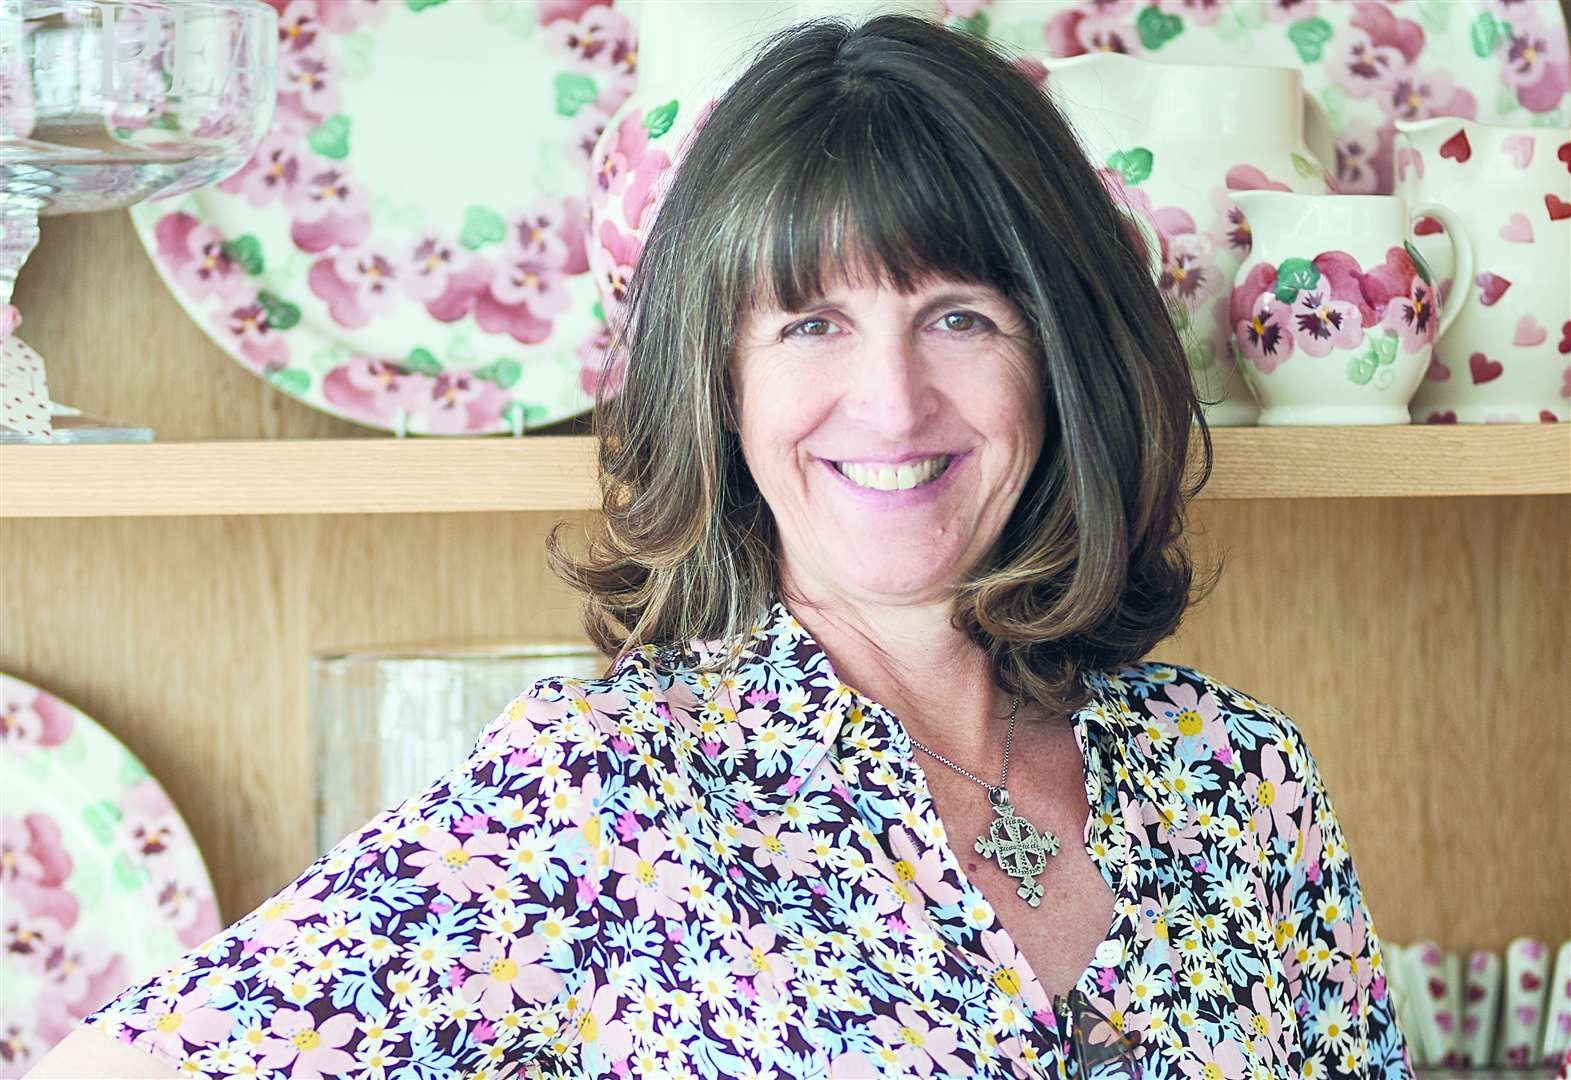 Interview: Pots of Style with Emma Bridgewater